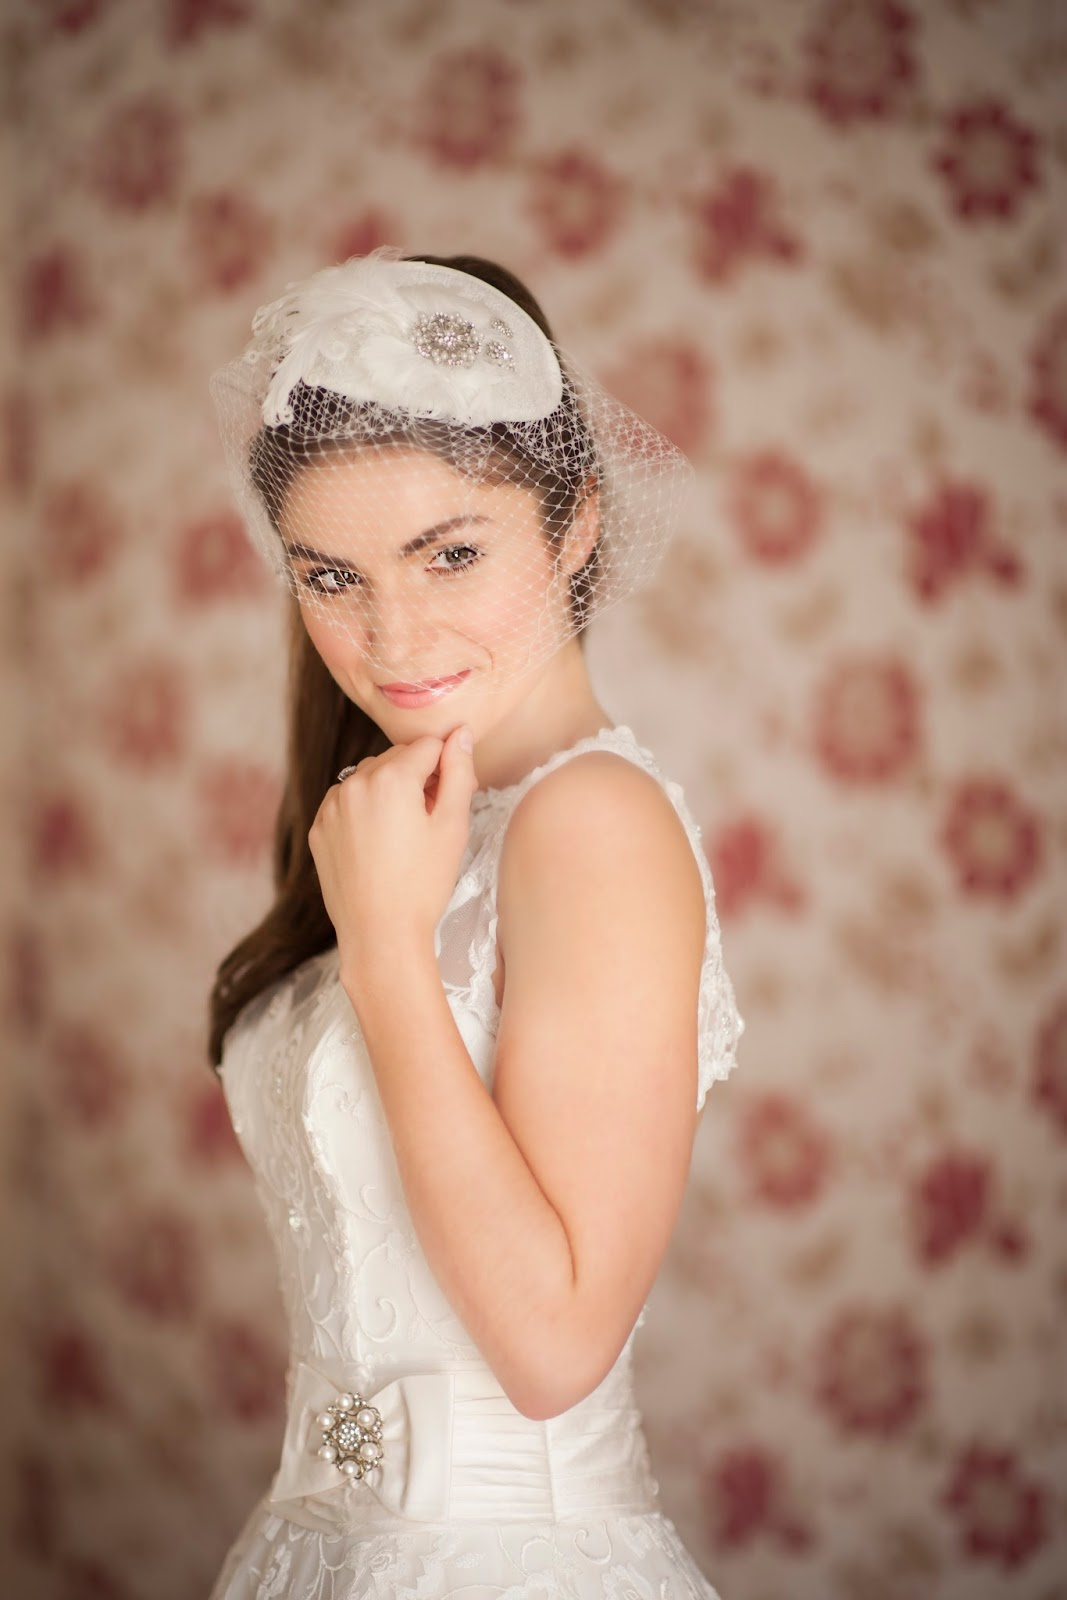 Model wears a fifties style gown and birdcage veil with a flirty ponytail hairstyle